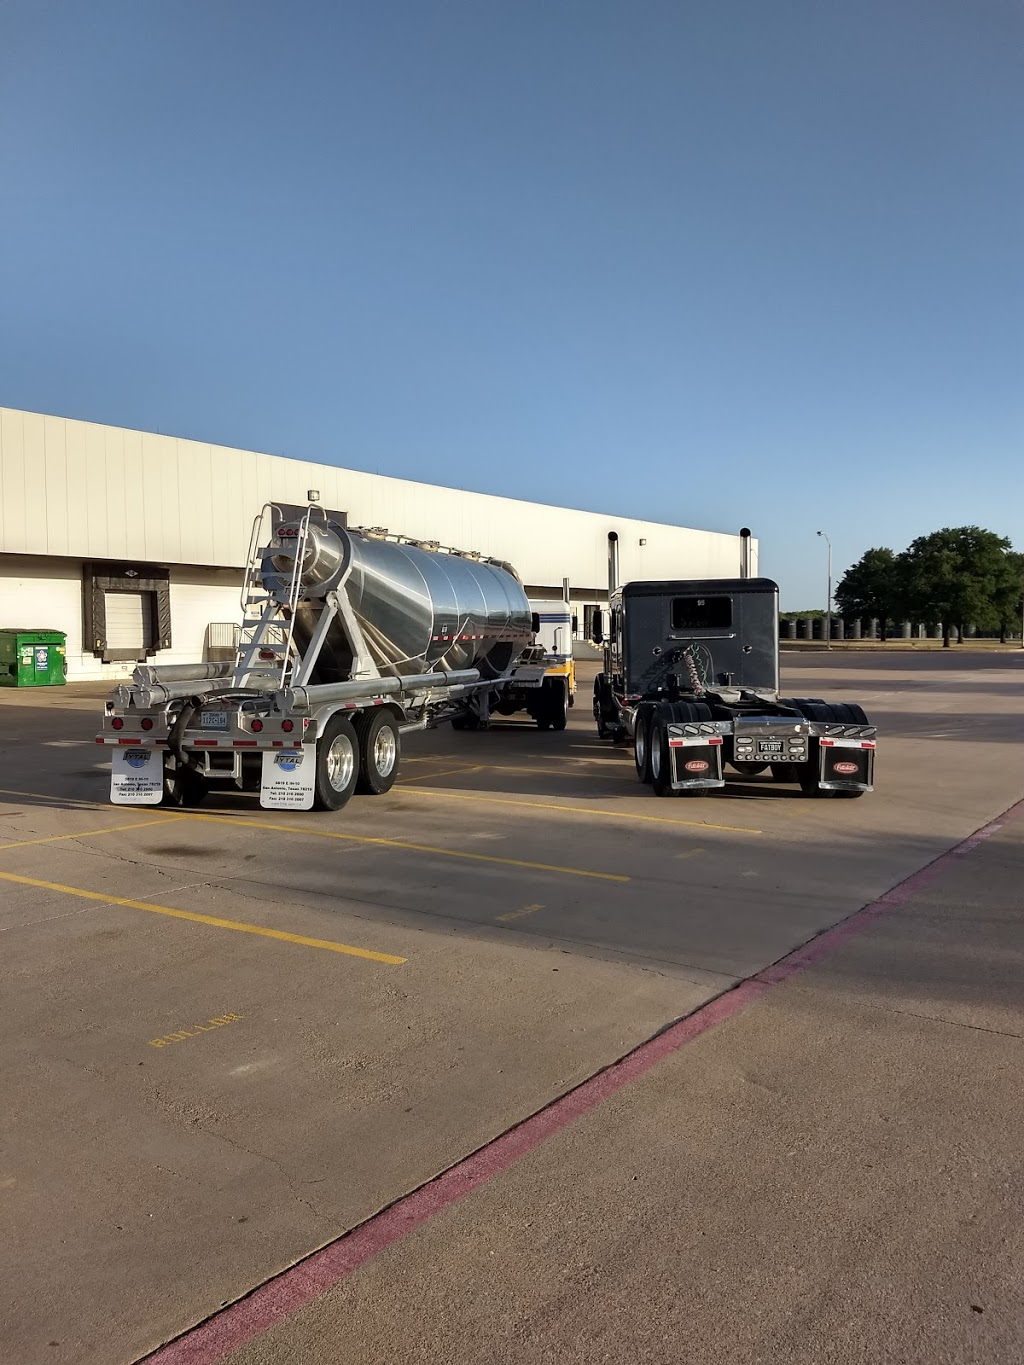 MHC Kenworth - South Fort Worth - store  | Photo 2 of 10 | Address: 685 John B Sias Memorial Pkwy Suite 985, Edgecliff Village, TX 76134, USA | Phone: (817) 568-2000